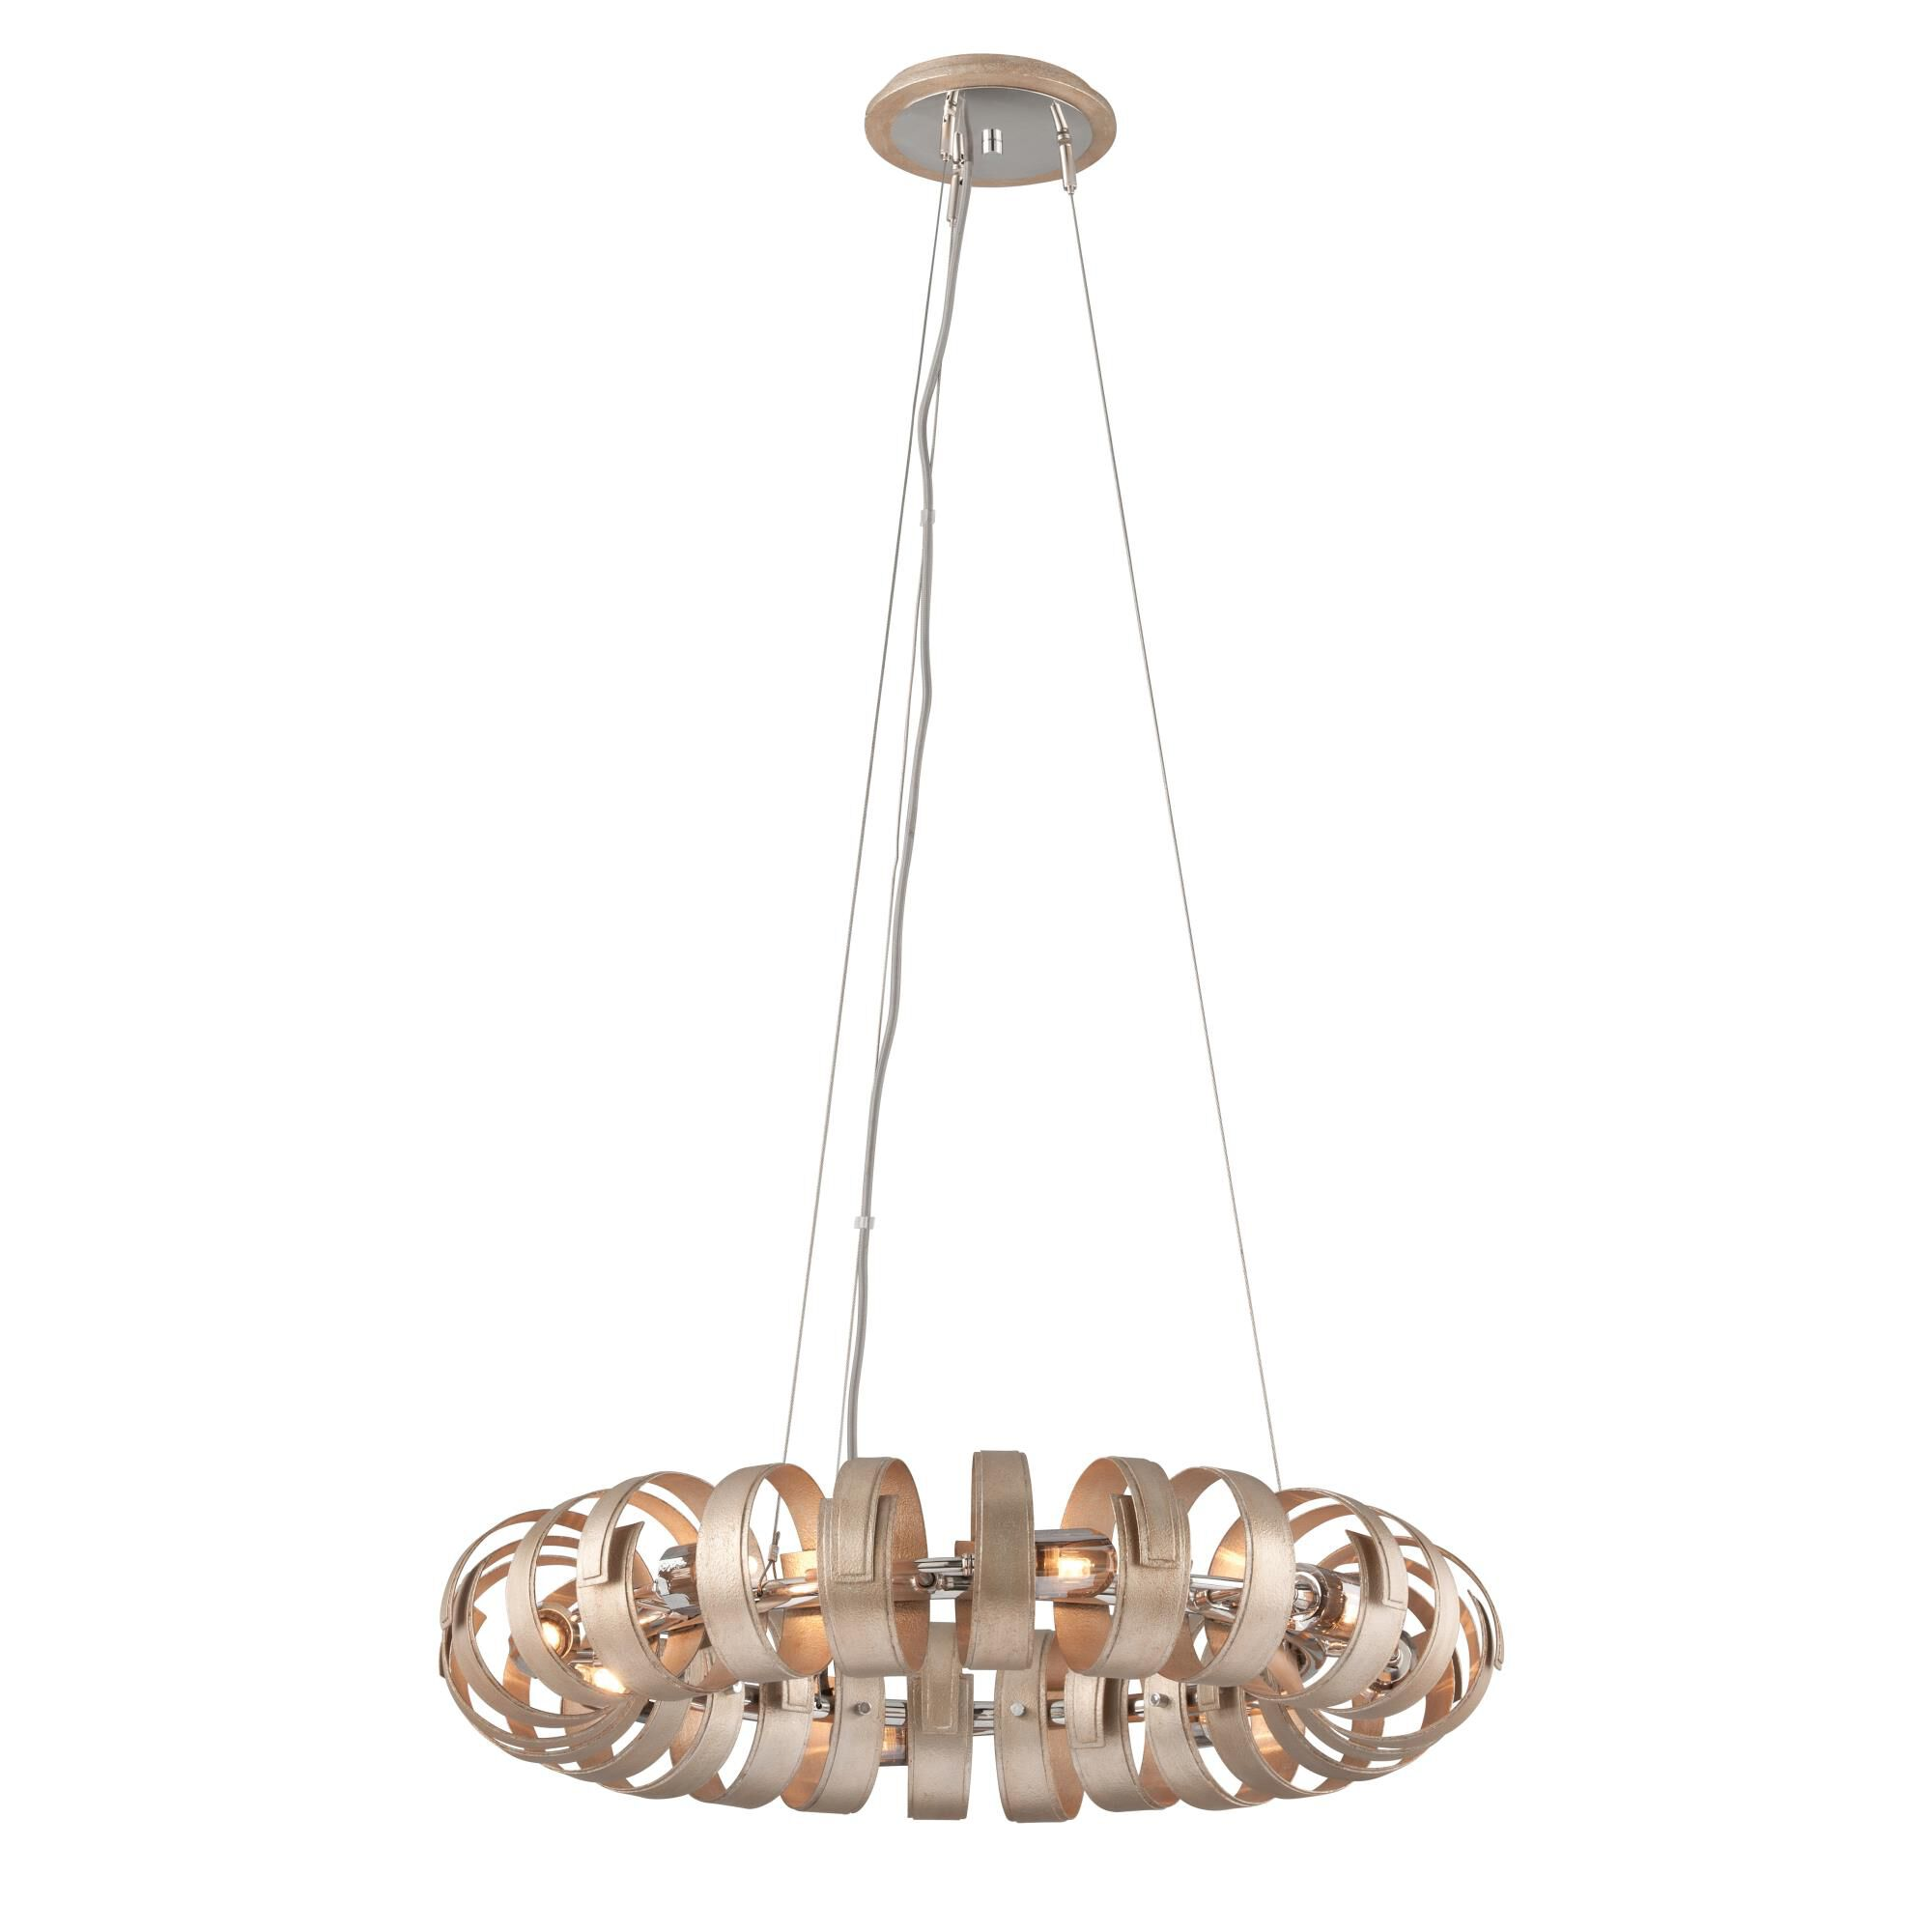 Corbett Lighting Recoil 28 Inch Large Pendant Recoil - 191-48 - Modern Contemporary Large Pendant